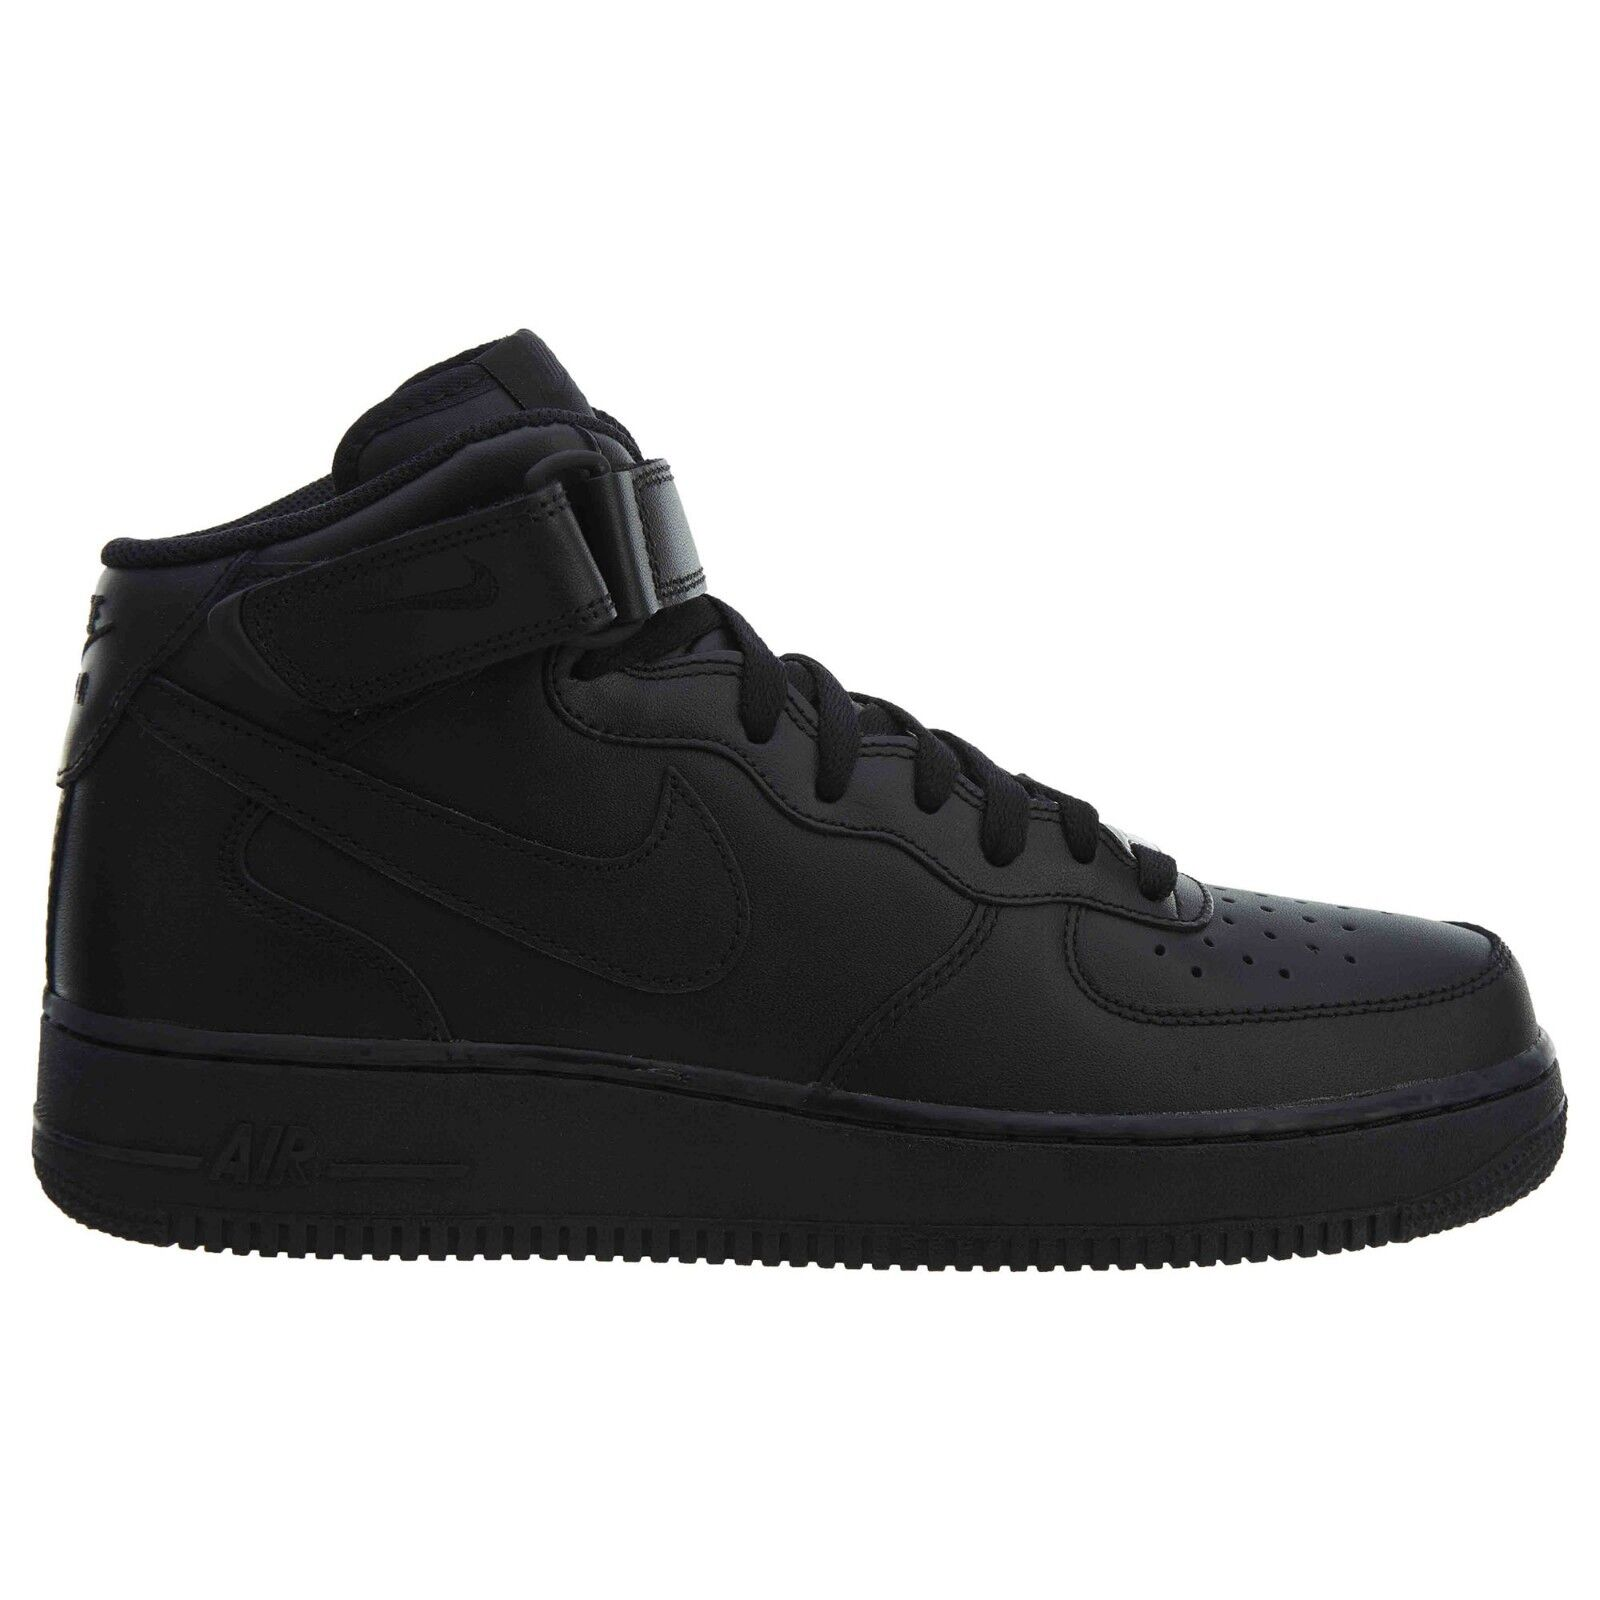 Nike Air Force 1 Mid '07 Mens 315123-001 Black Leather Athletic shoes Size 7